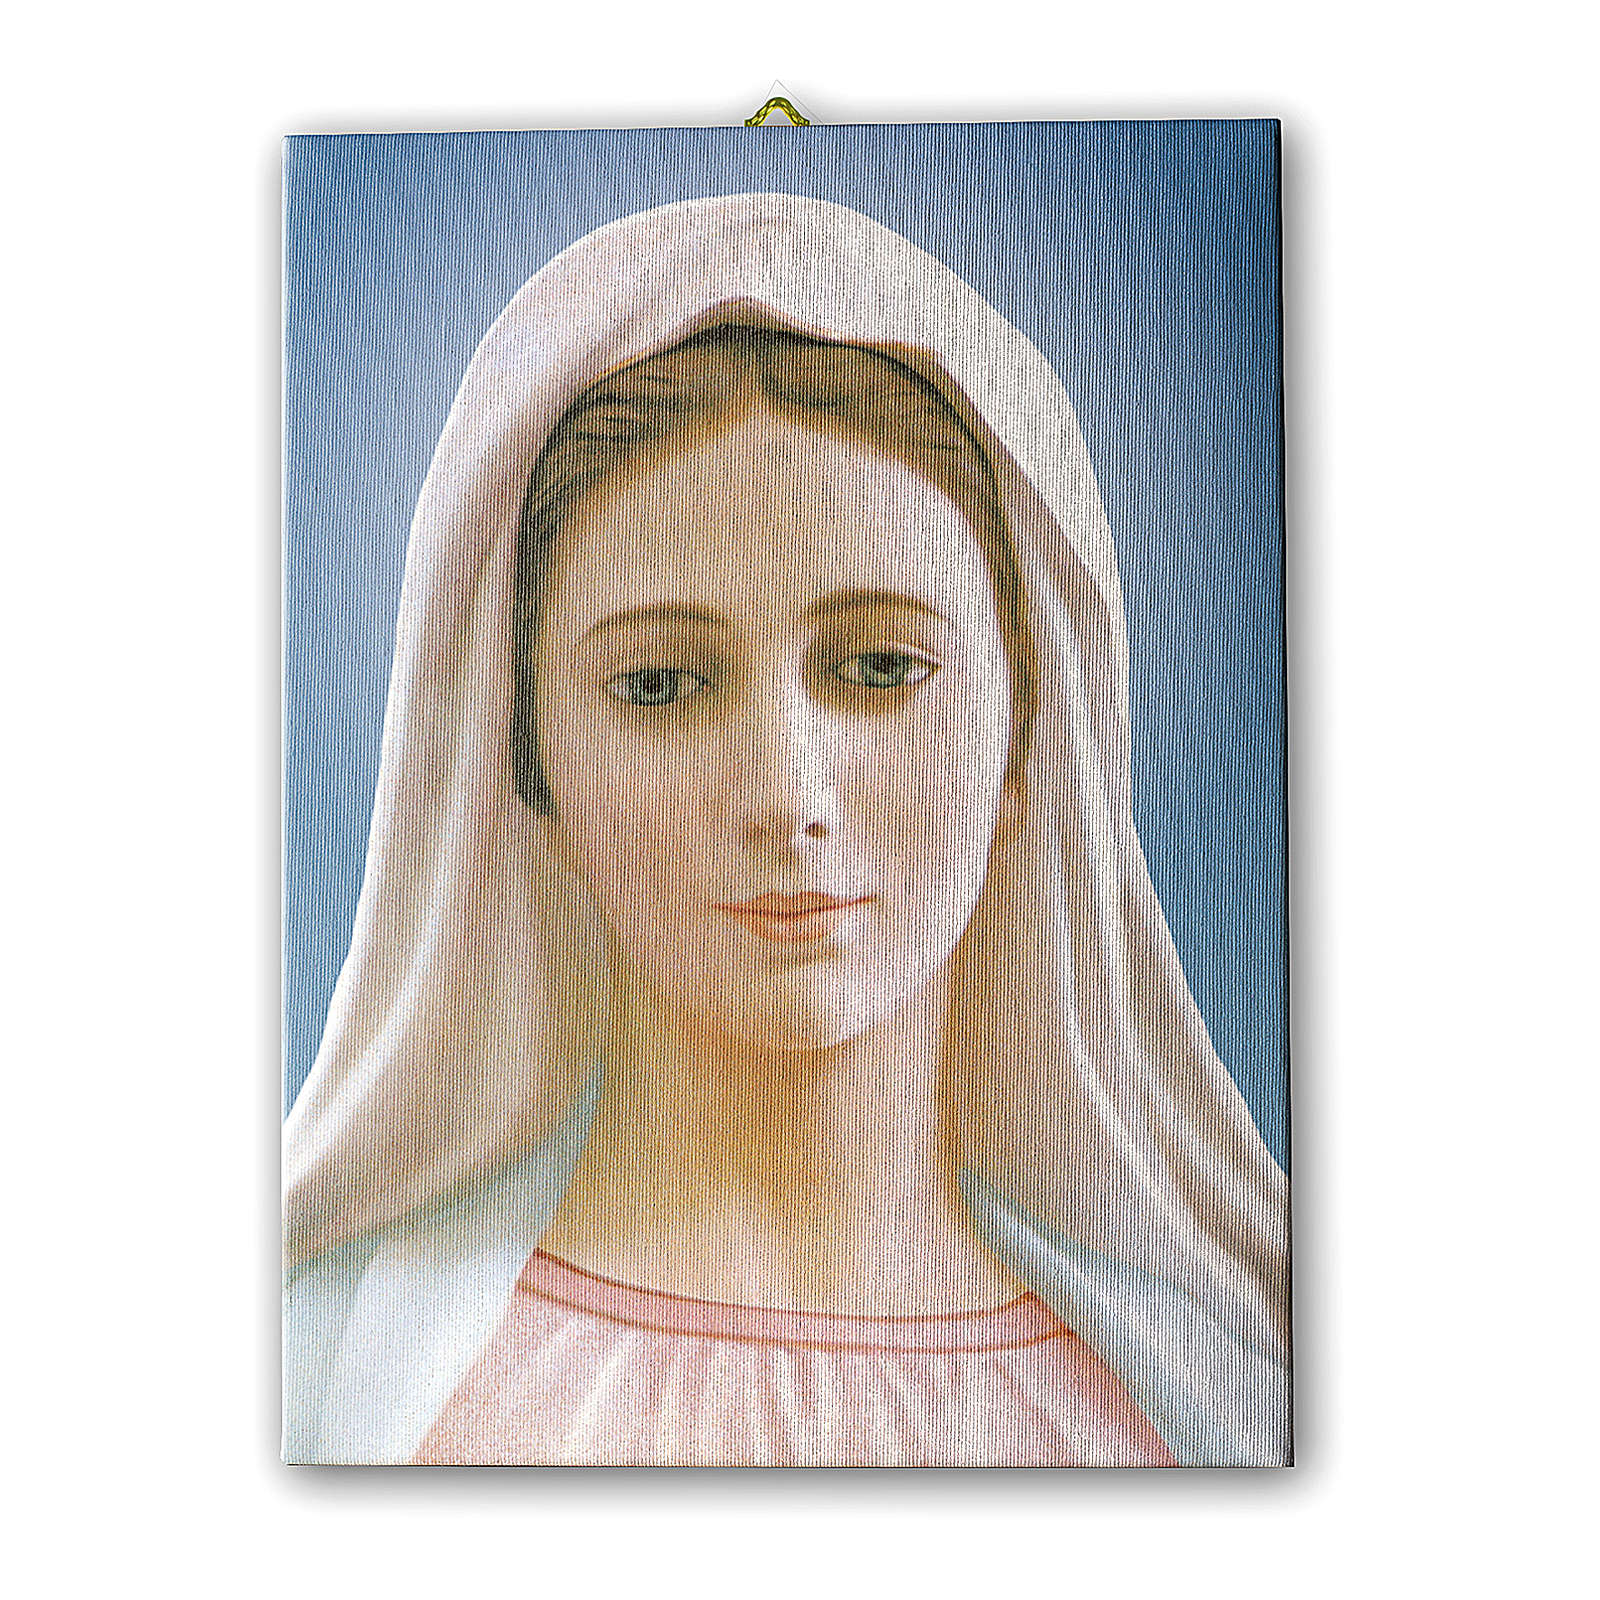 Our Lady of Medjugorje print on canvas 40x30 cm 3